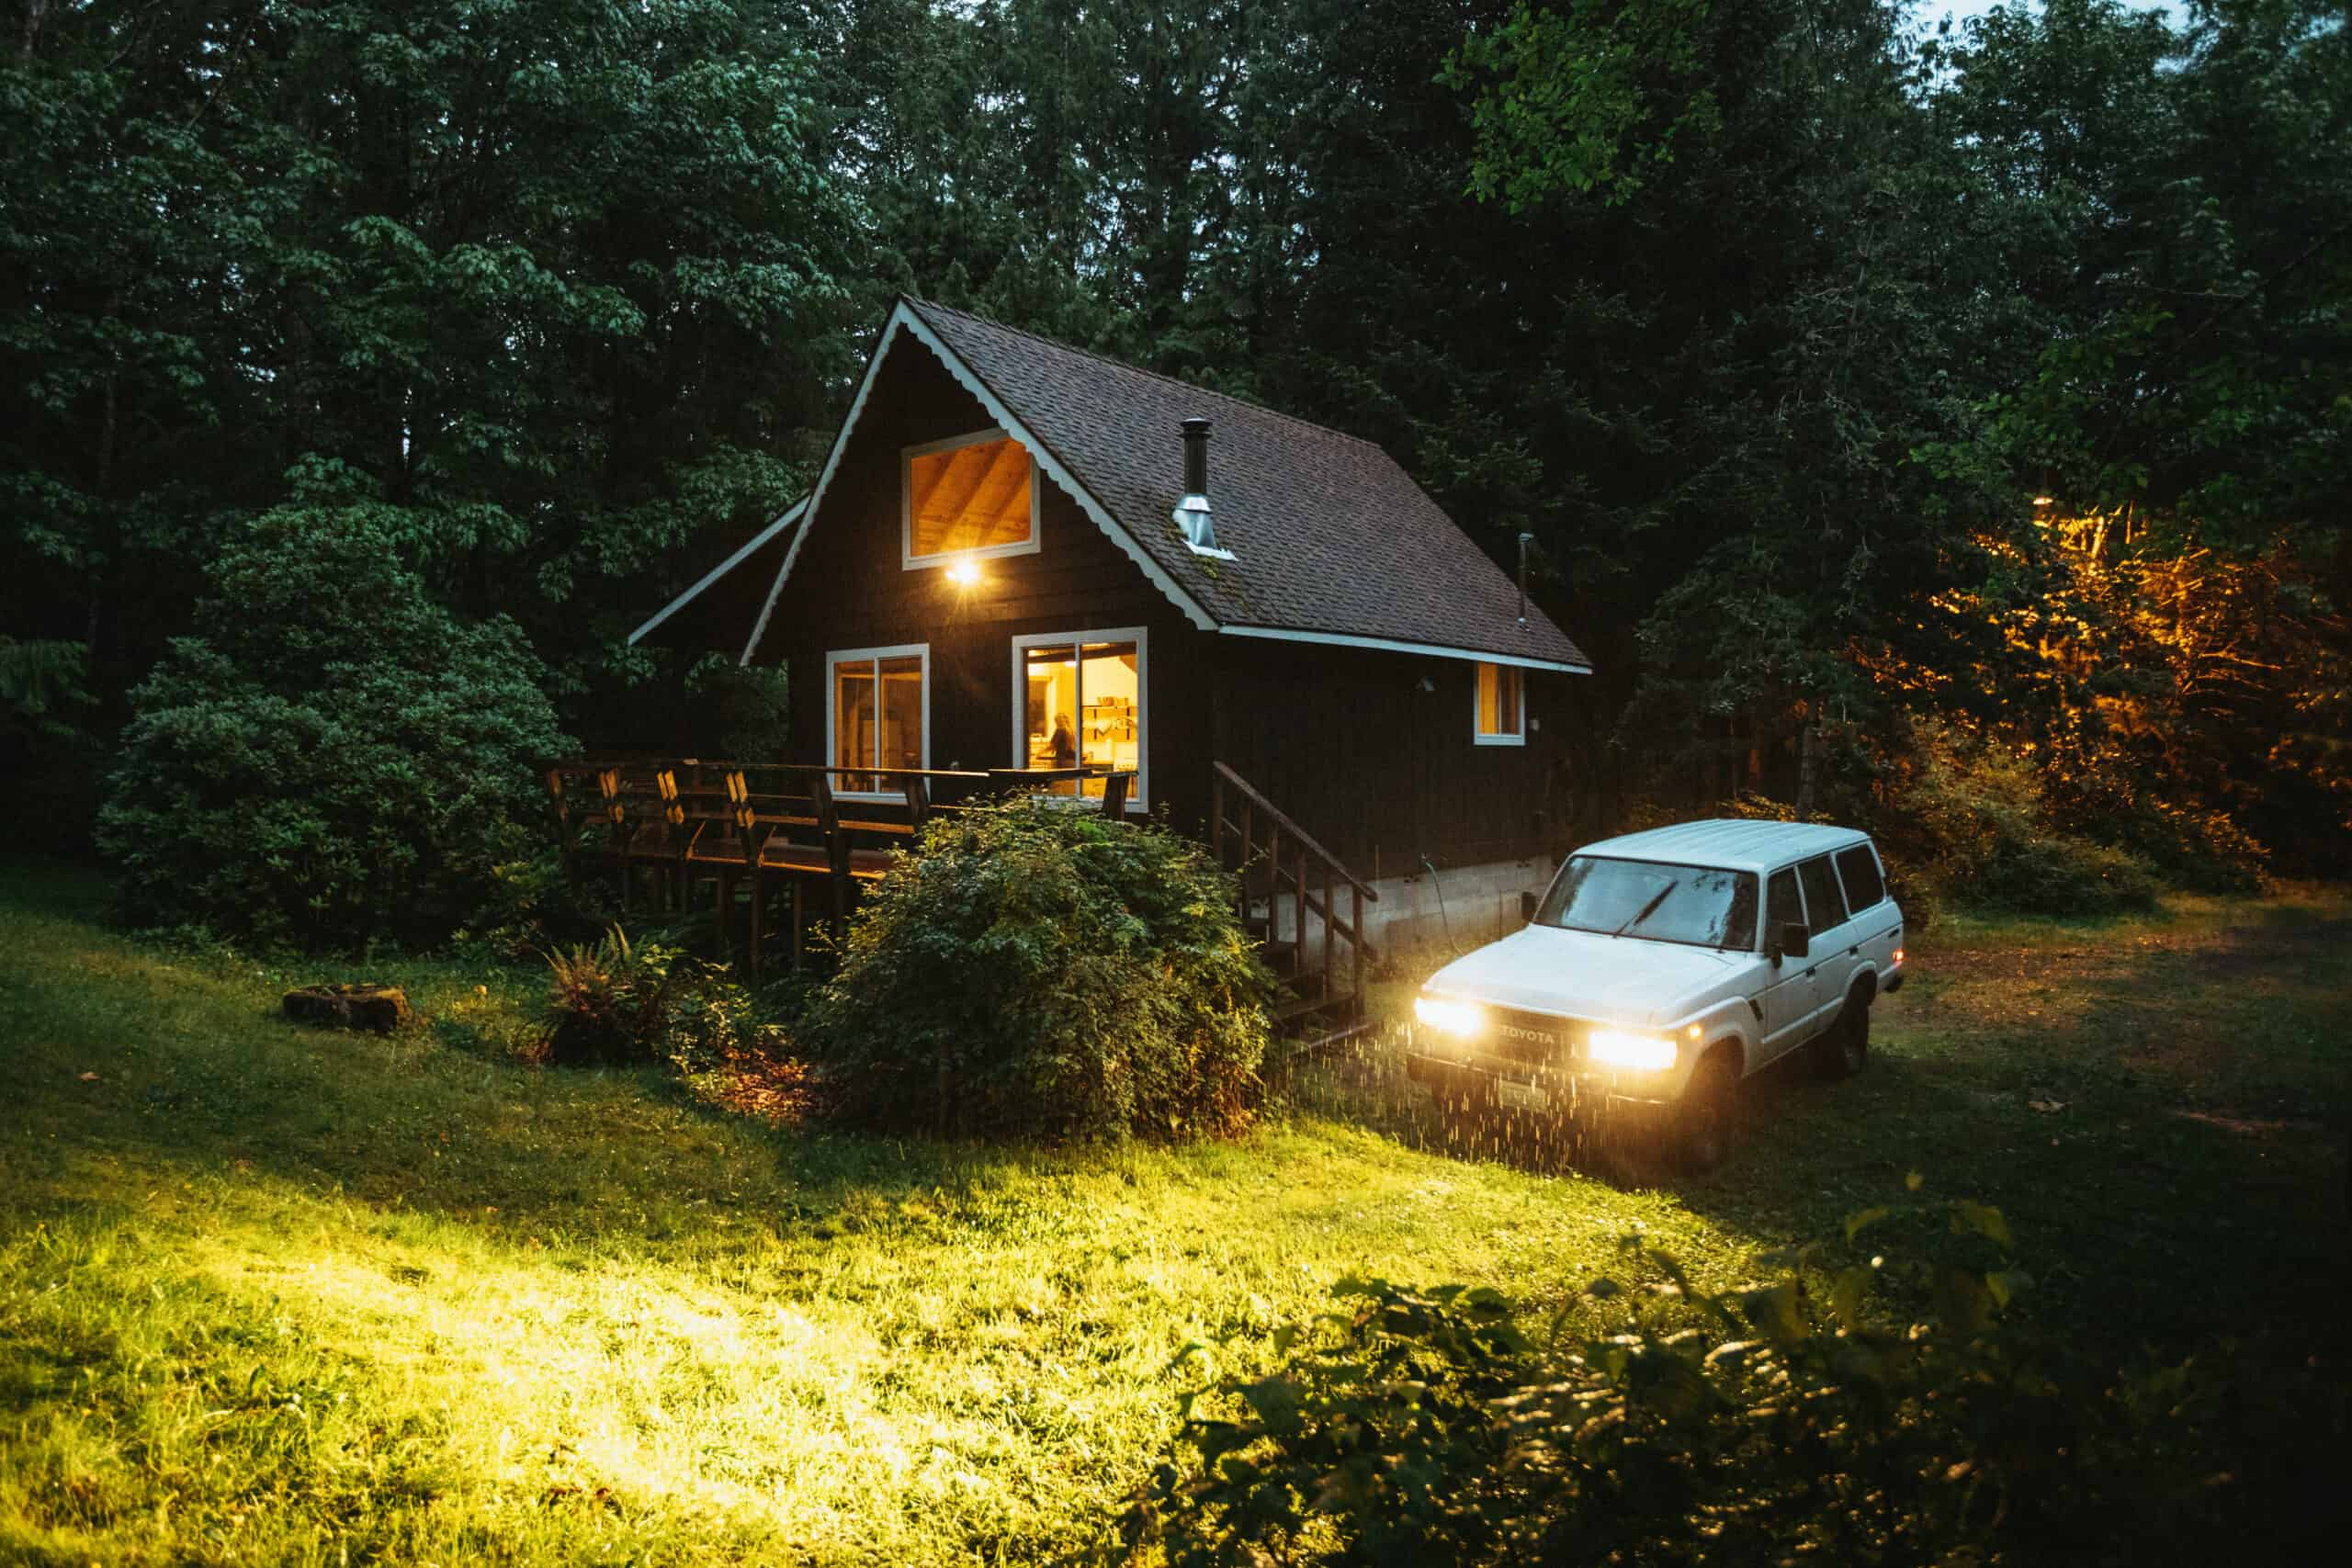 12 Amazing Pacific Northwest Cabins To Refresh Your Soul This Season